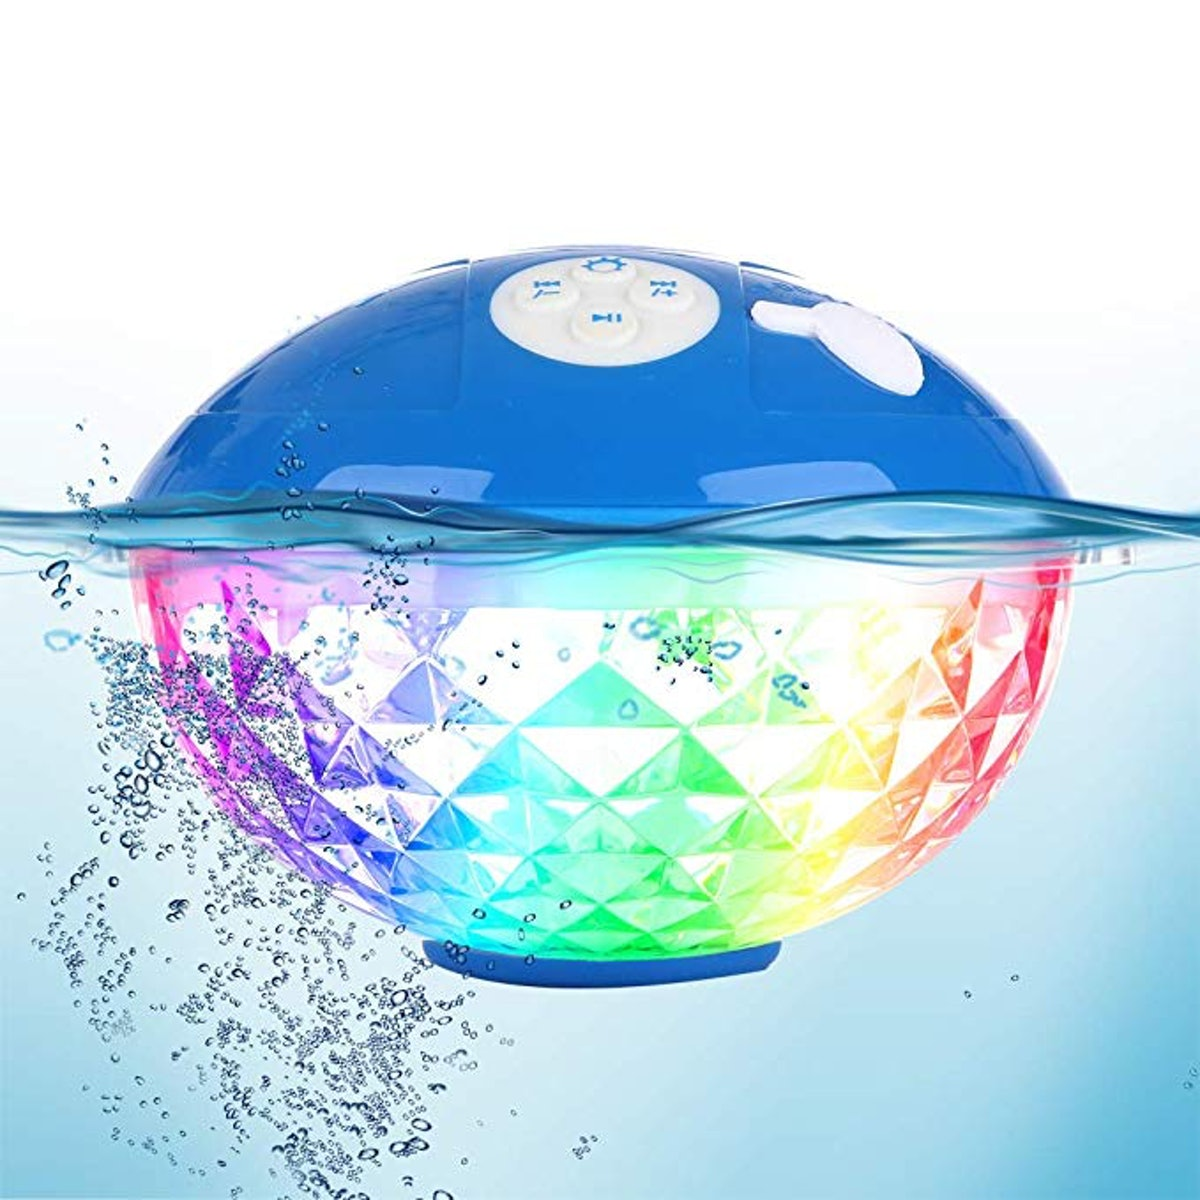 Blufree Bluetooth Speakers with Colorful Lights